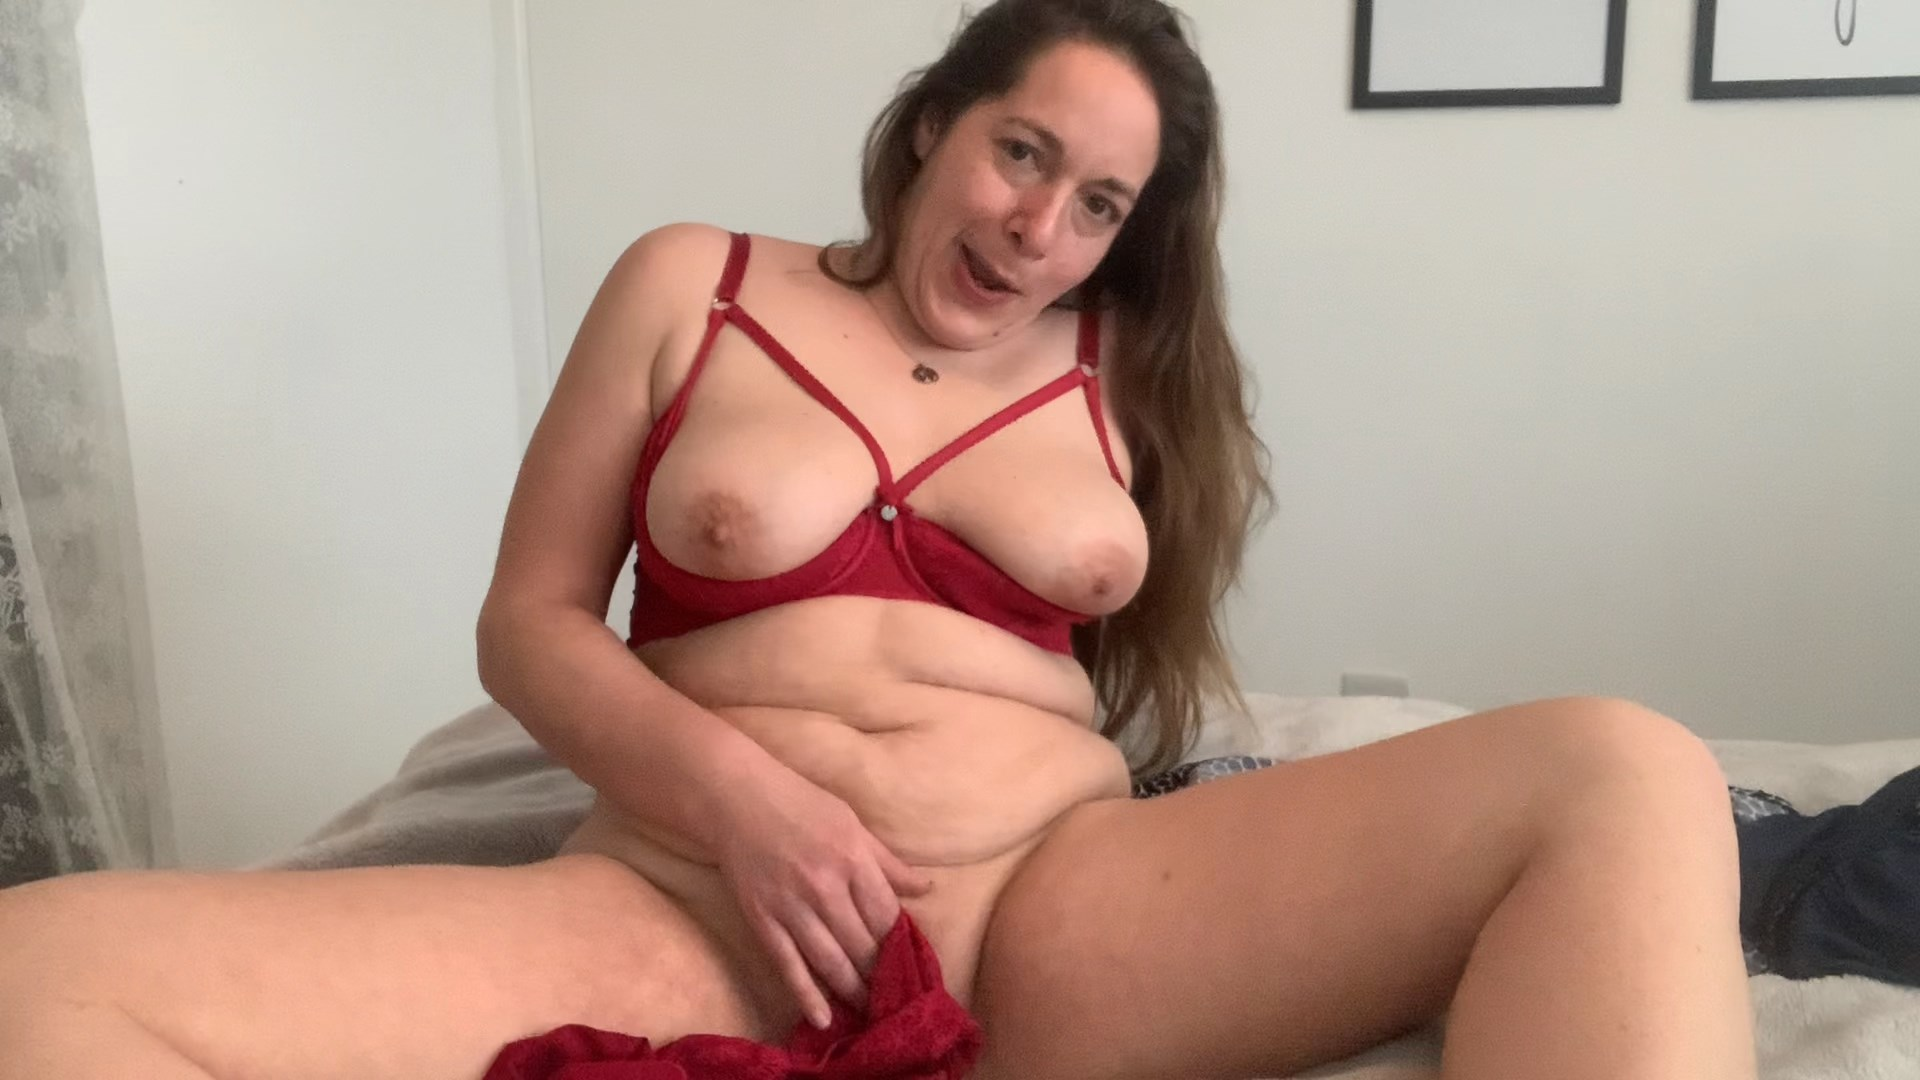 My Girl Butterfly - Taboo Mommy JOI wet panty play